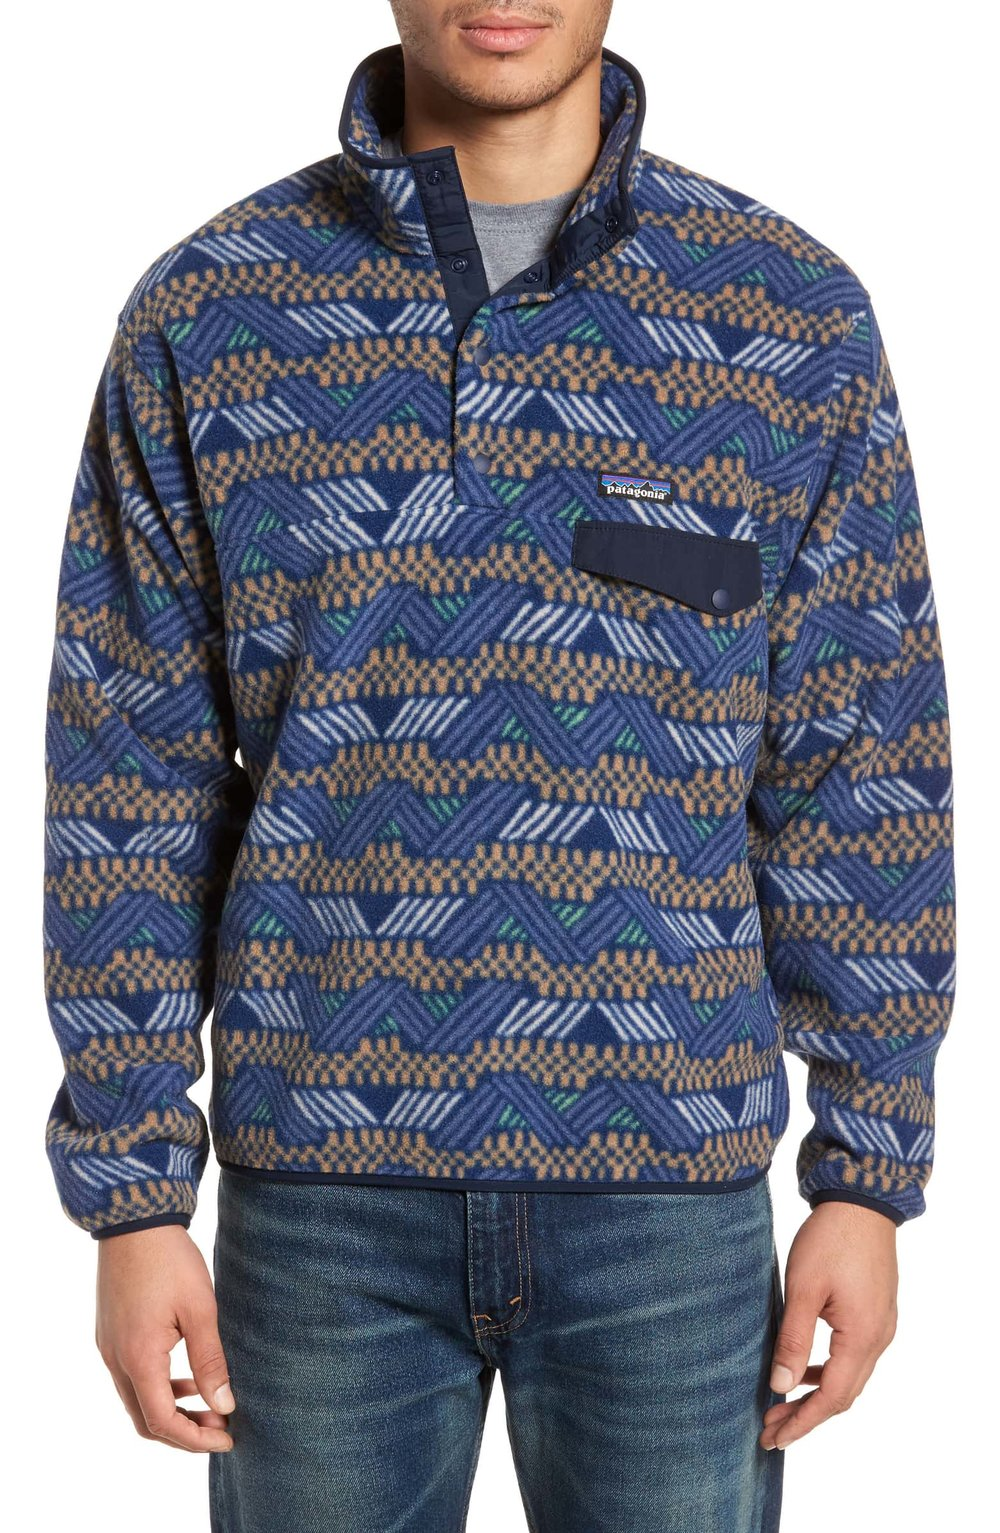 Sustainable Clothing for Men at Nordstrom